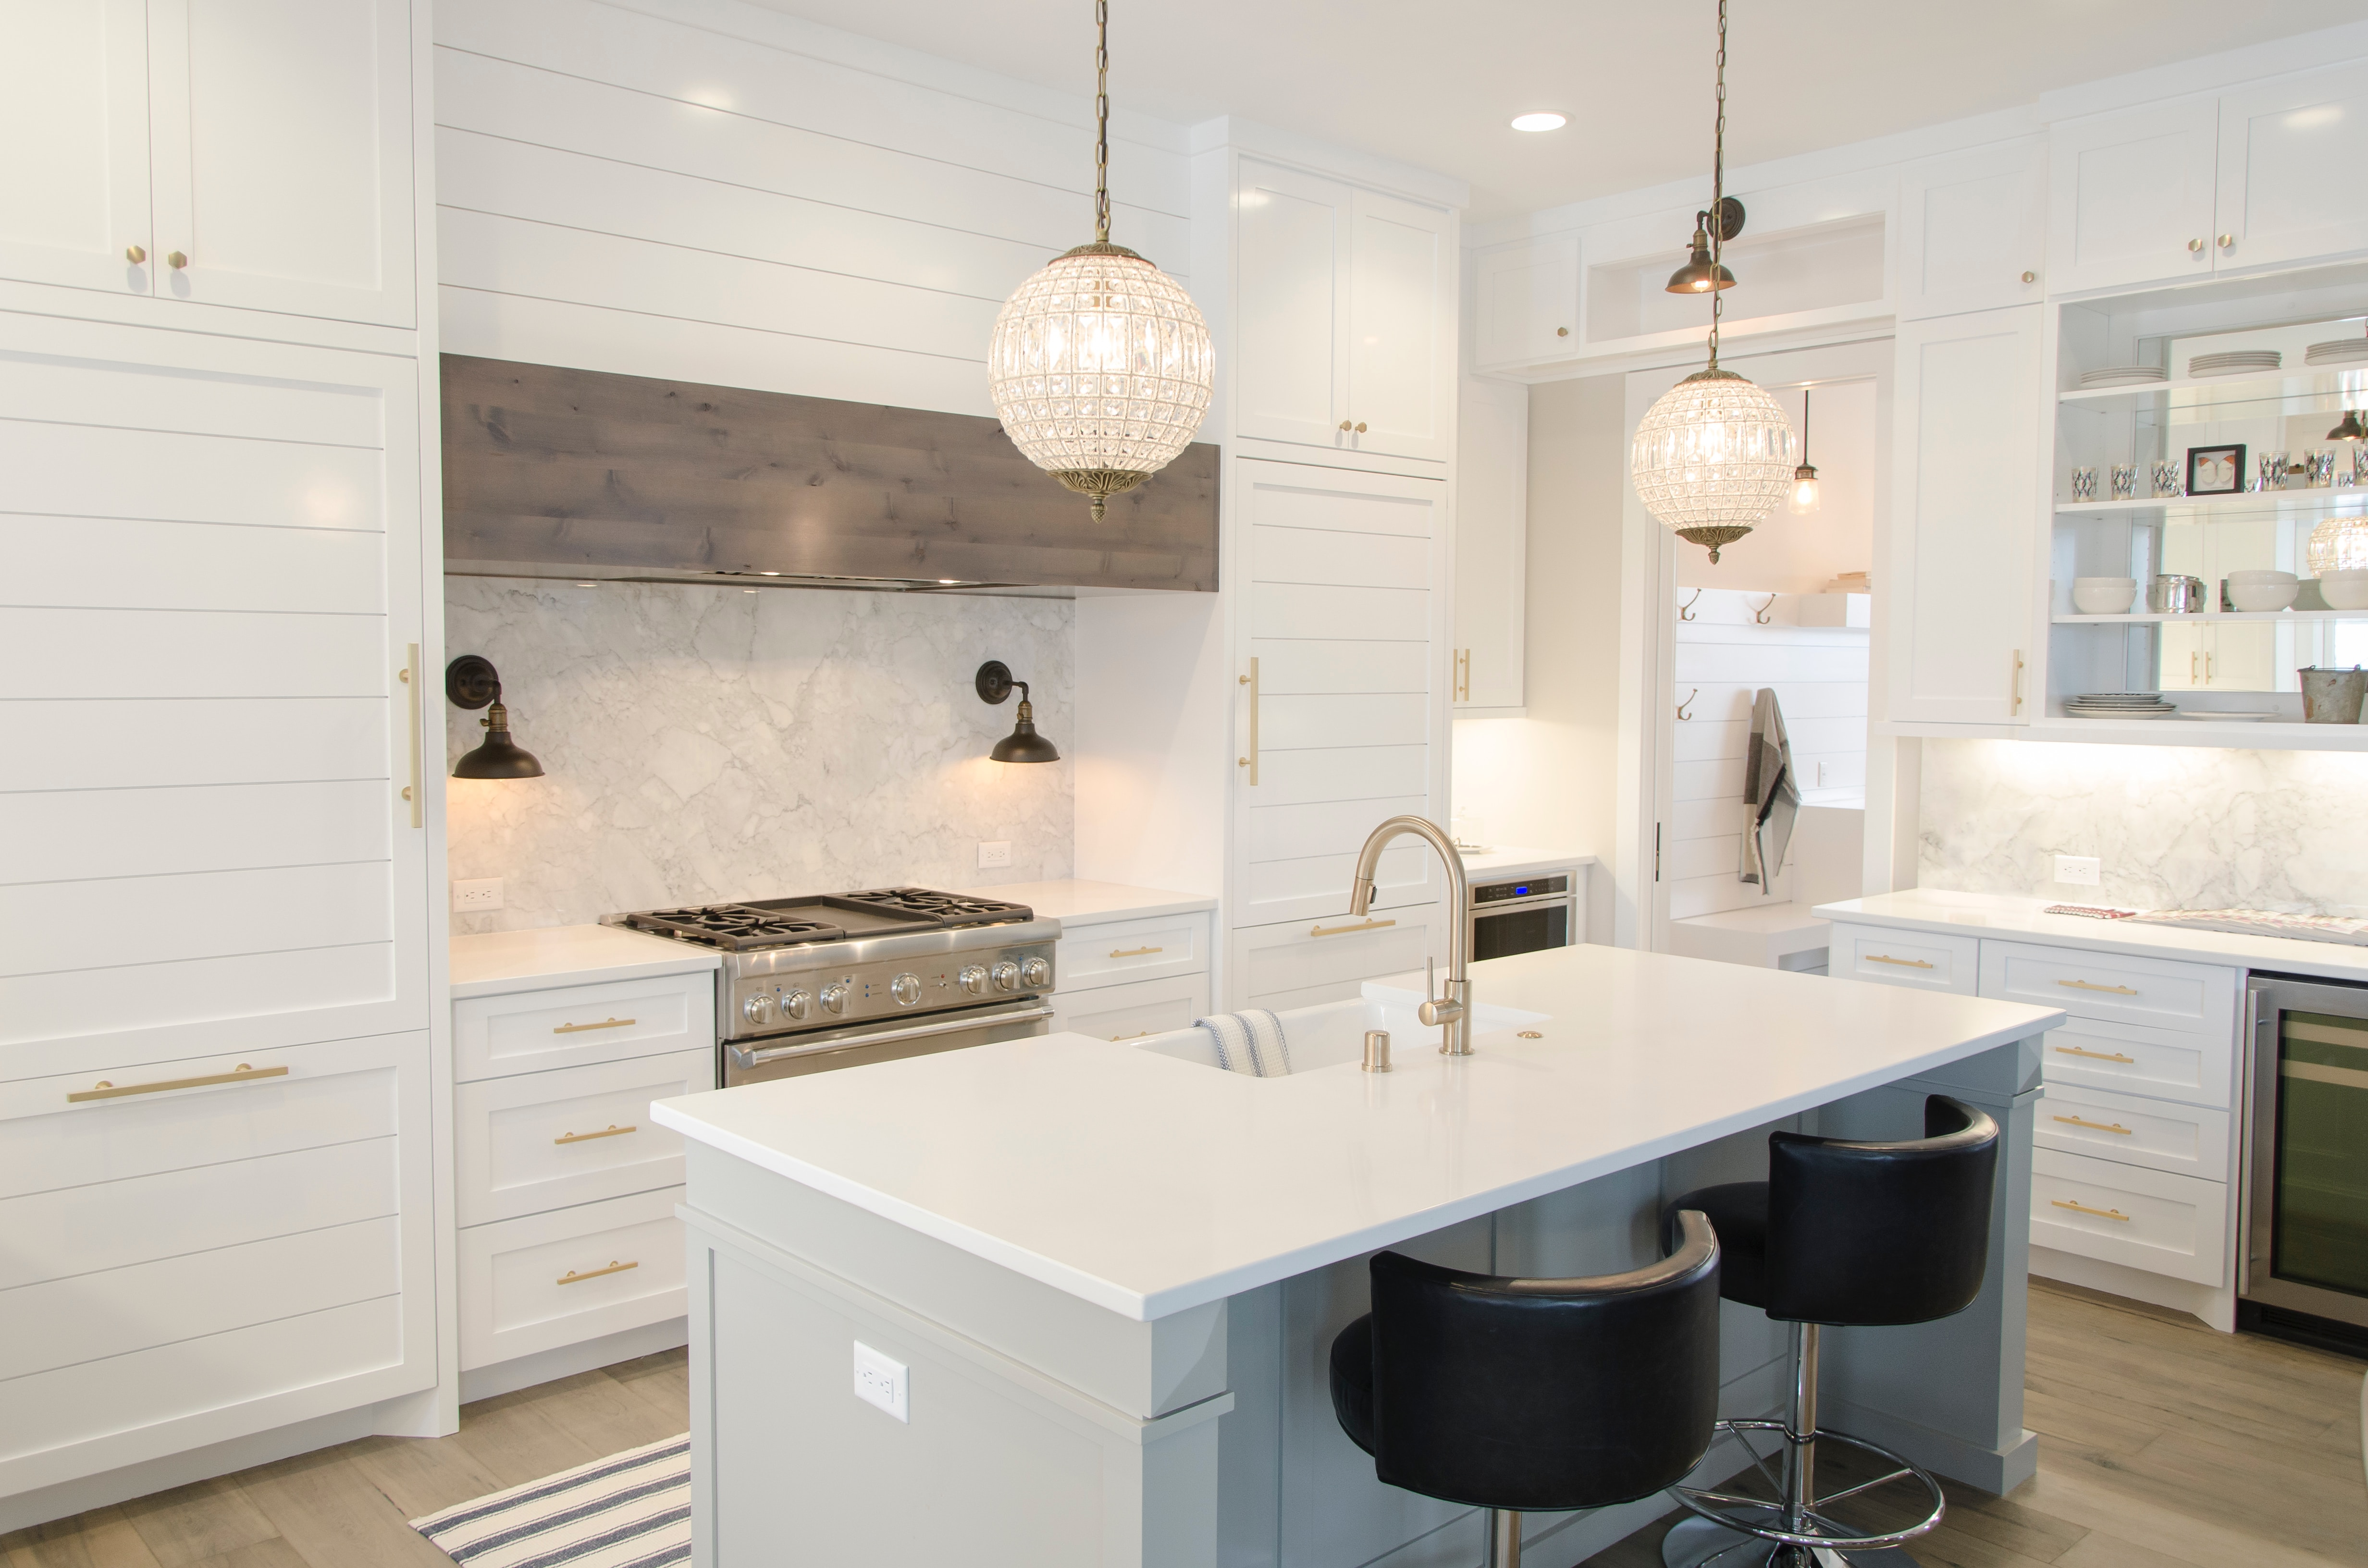 How Much Will My Home Remodel Cost Medford Design Build